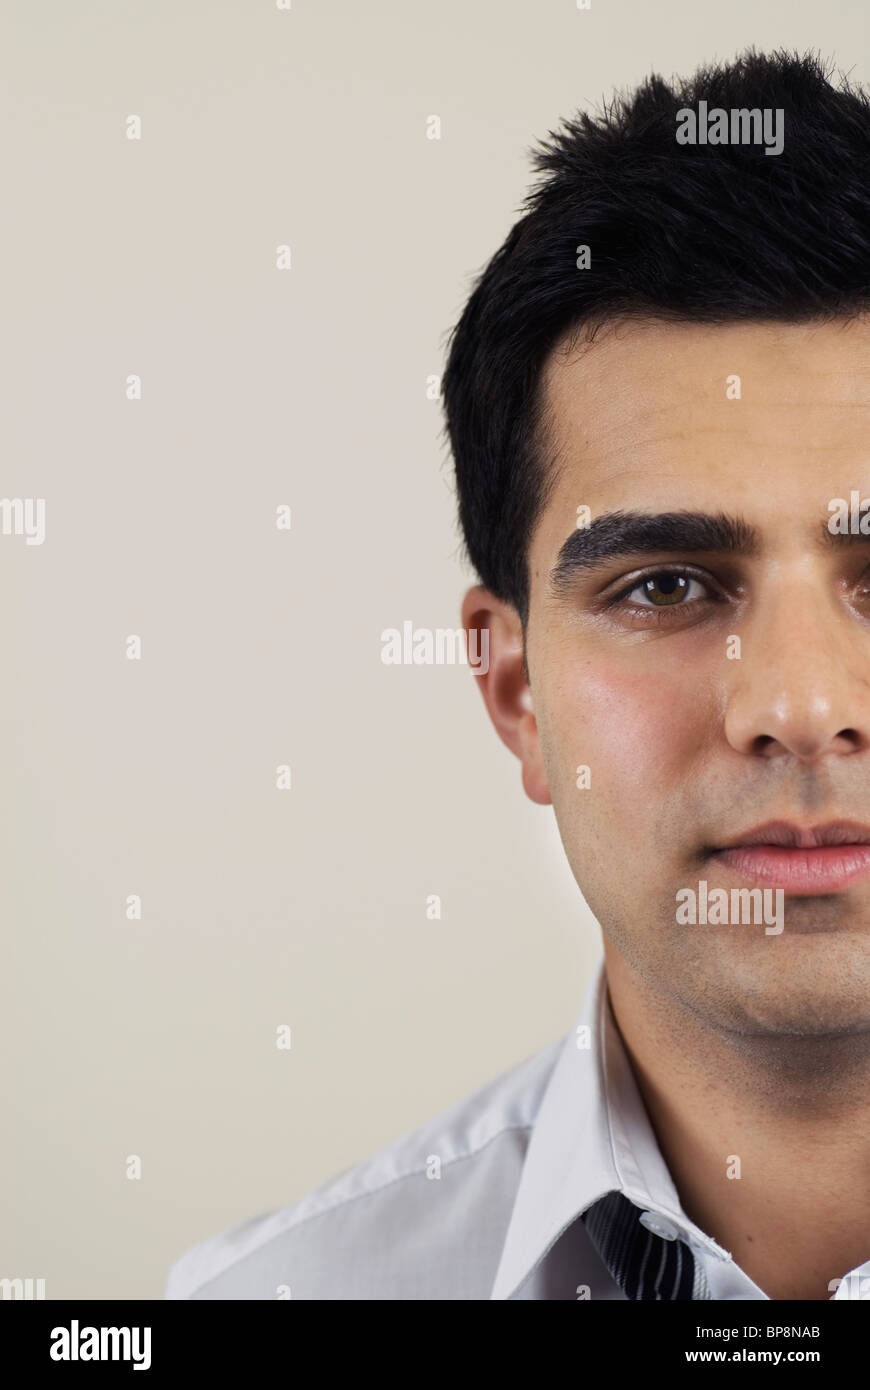 Closeup of a young Asian business man looking at camera - Stock Image